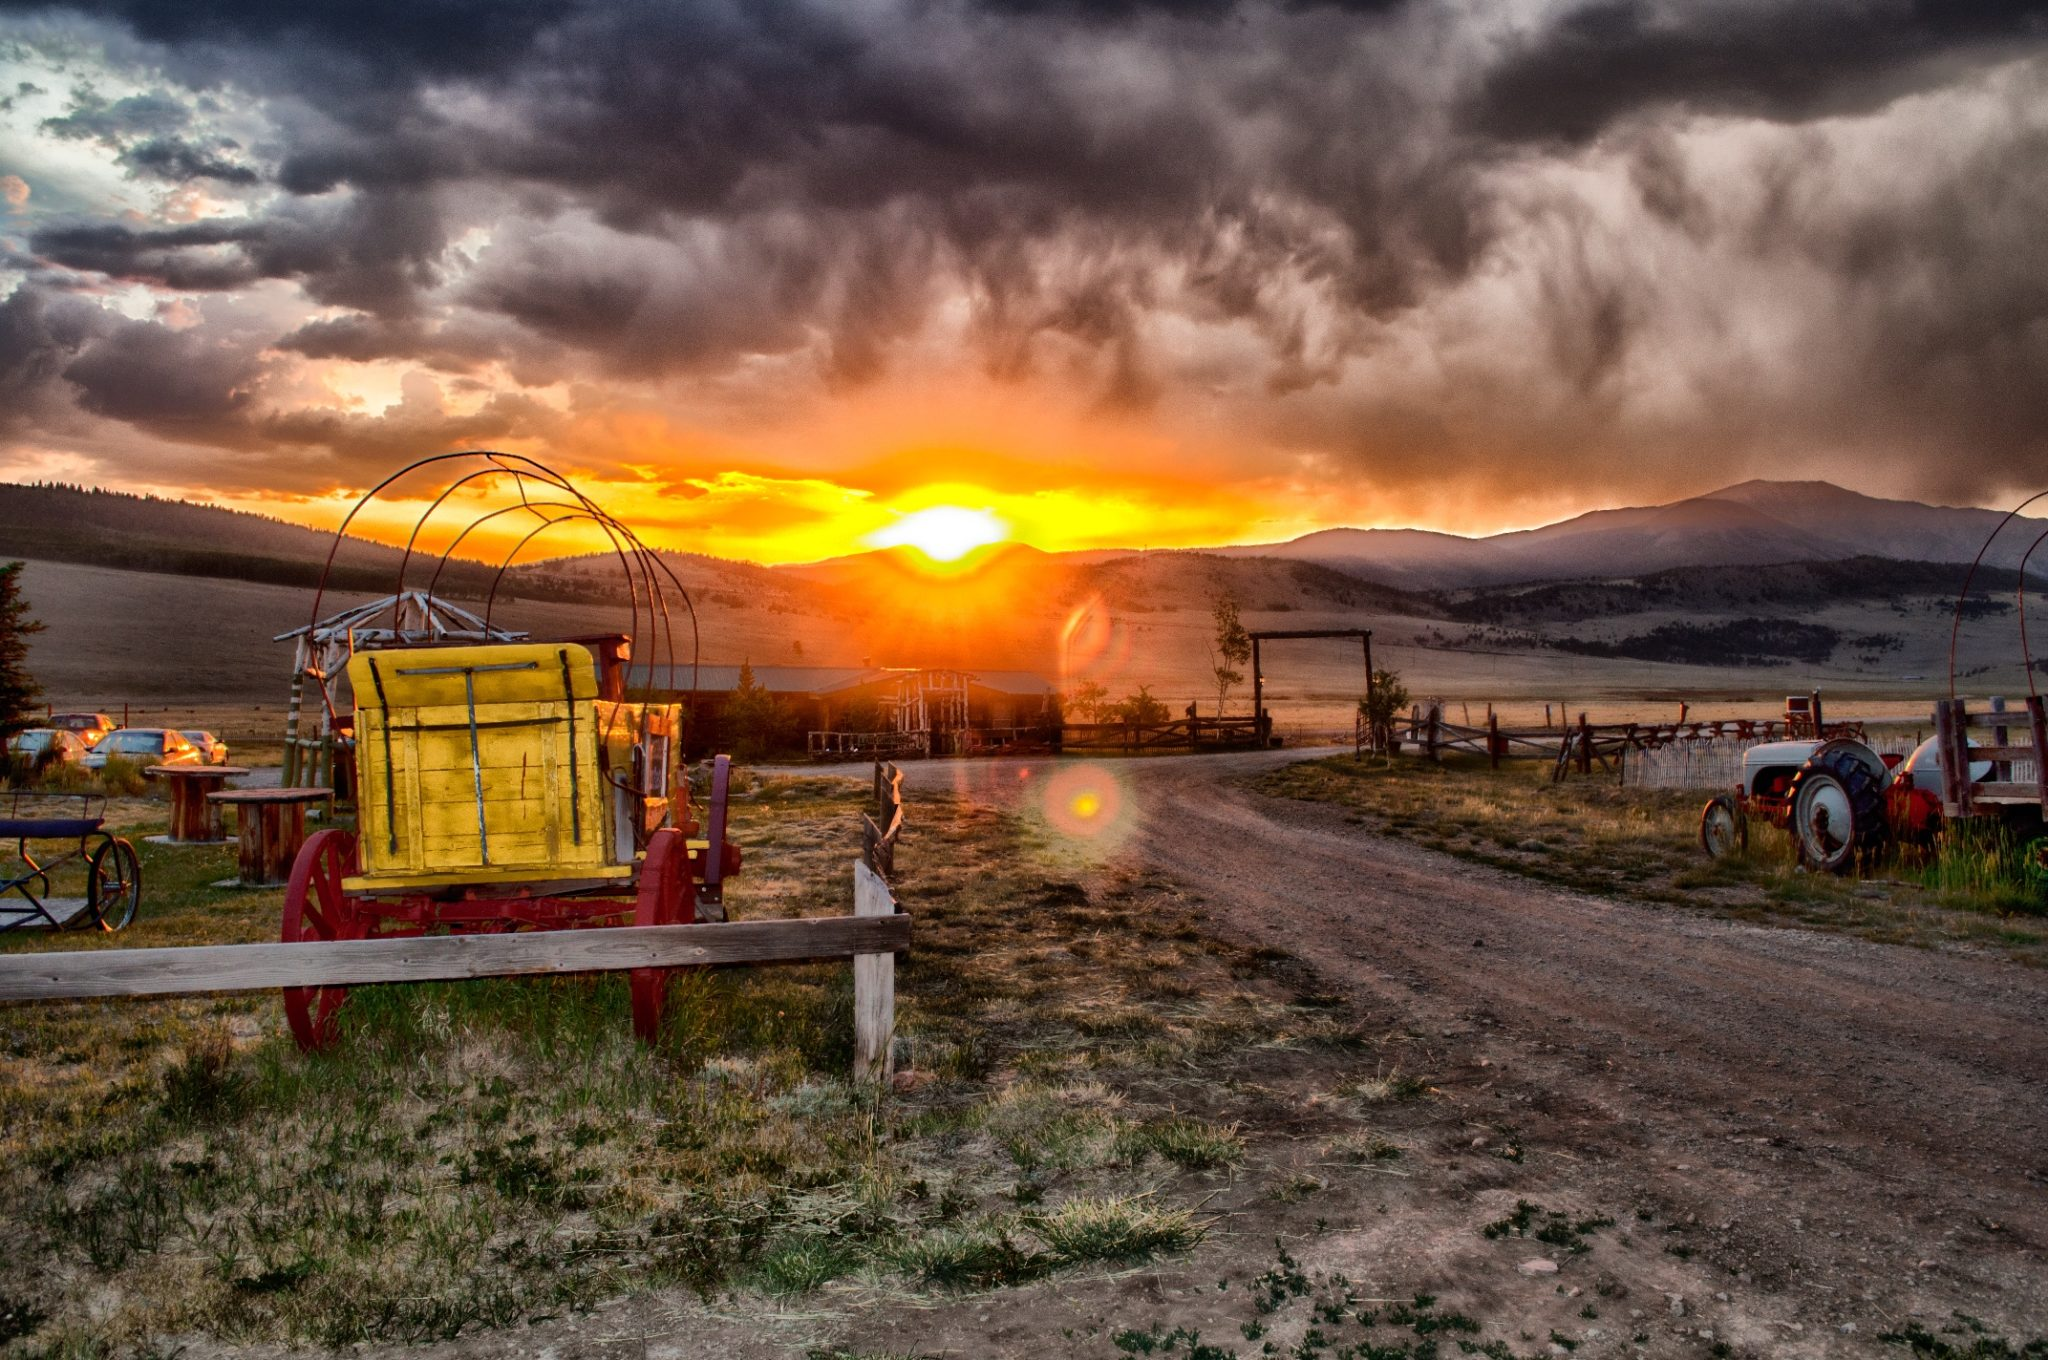 wagon_sunset_HDR33